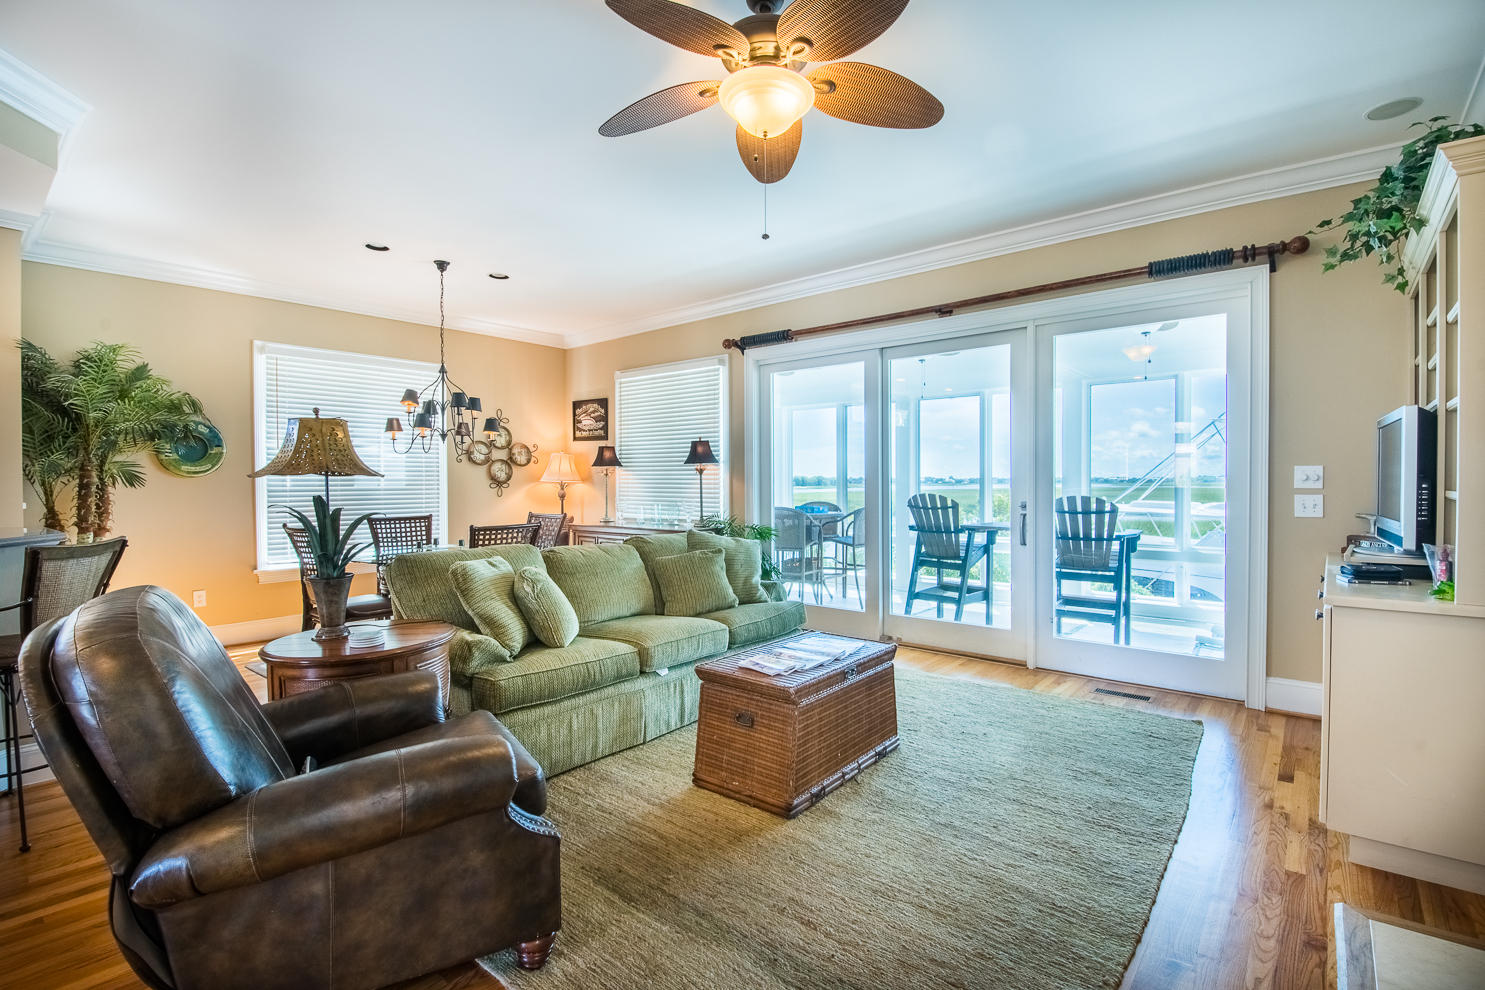 Tolers Cove Homes For Sale - B-4 & B-5 Tolers Cove Marina 70ft + Home, Mount Pleasant, SC - 29